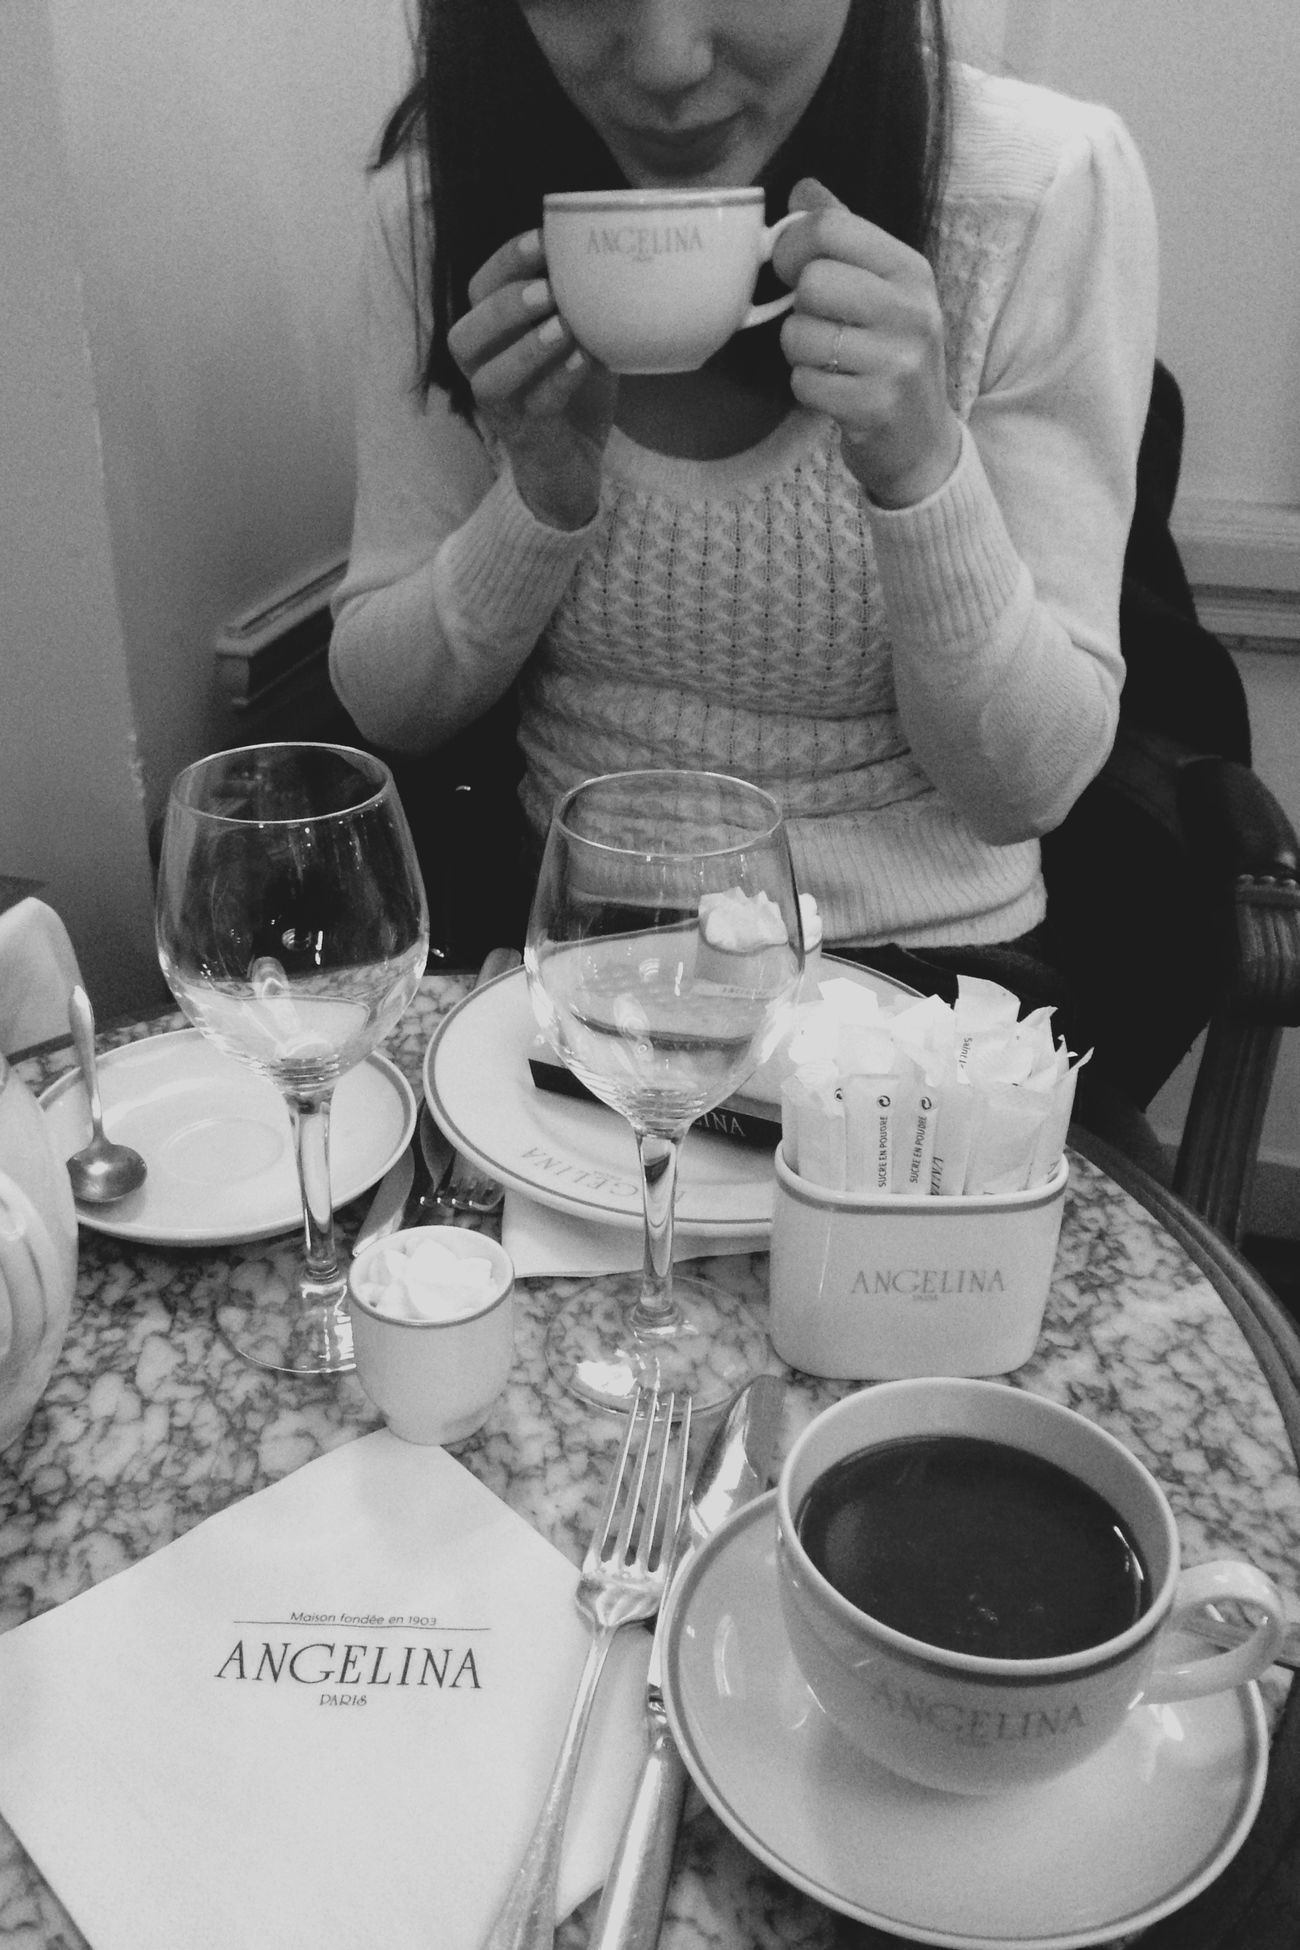 One of the most famous tea house Paris ParisianLifestyle IPhoneography Blackandwhite Enjoying Life Food Enjoying A Meal